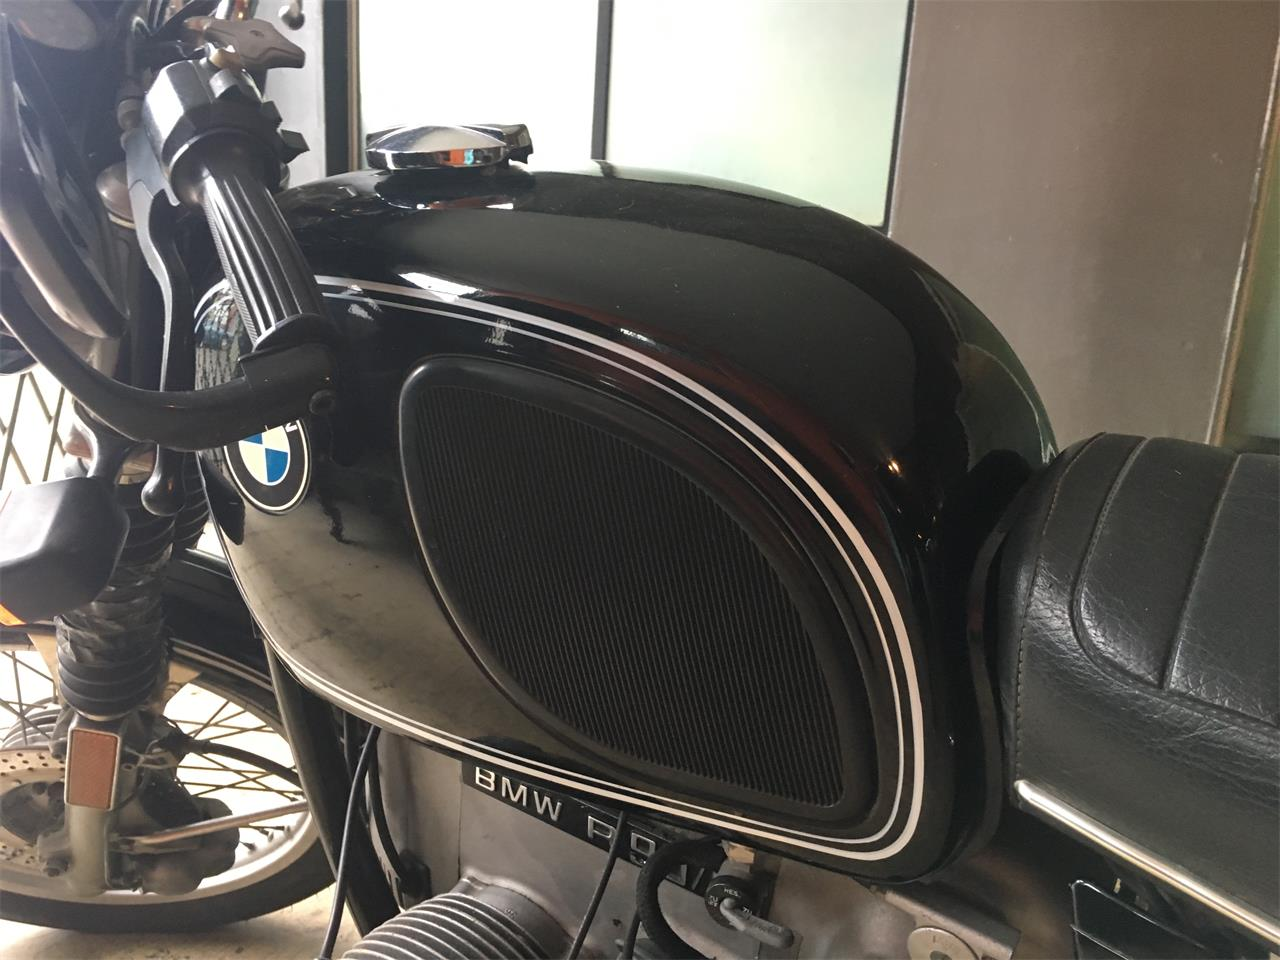 Large Picture of '75 BMW Motorcycle located in oakland California - $3,150.00 Offered by Classic Cars West - Q67F